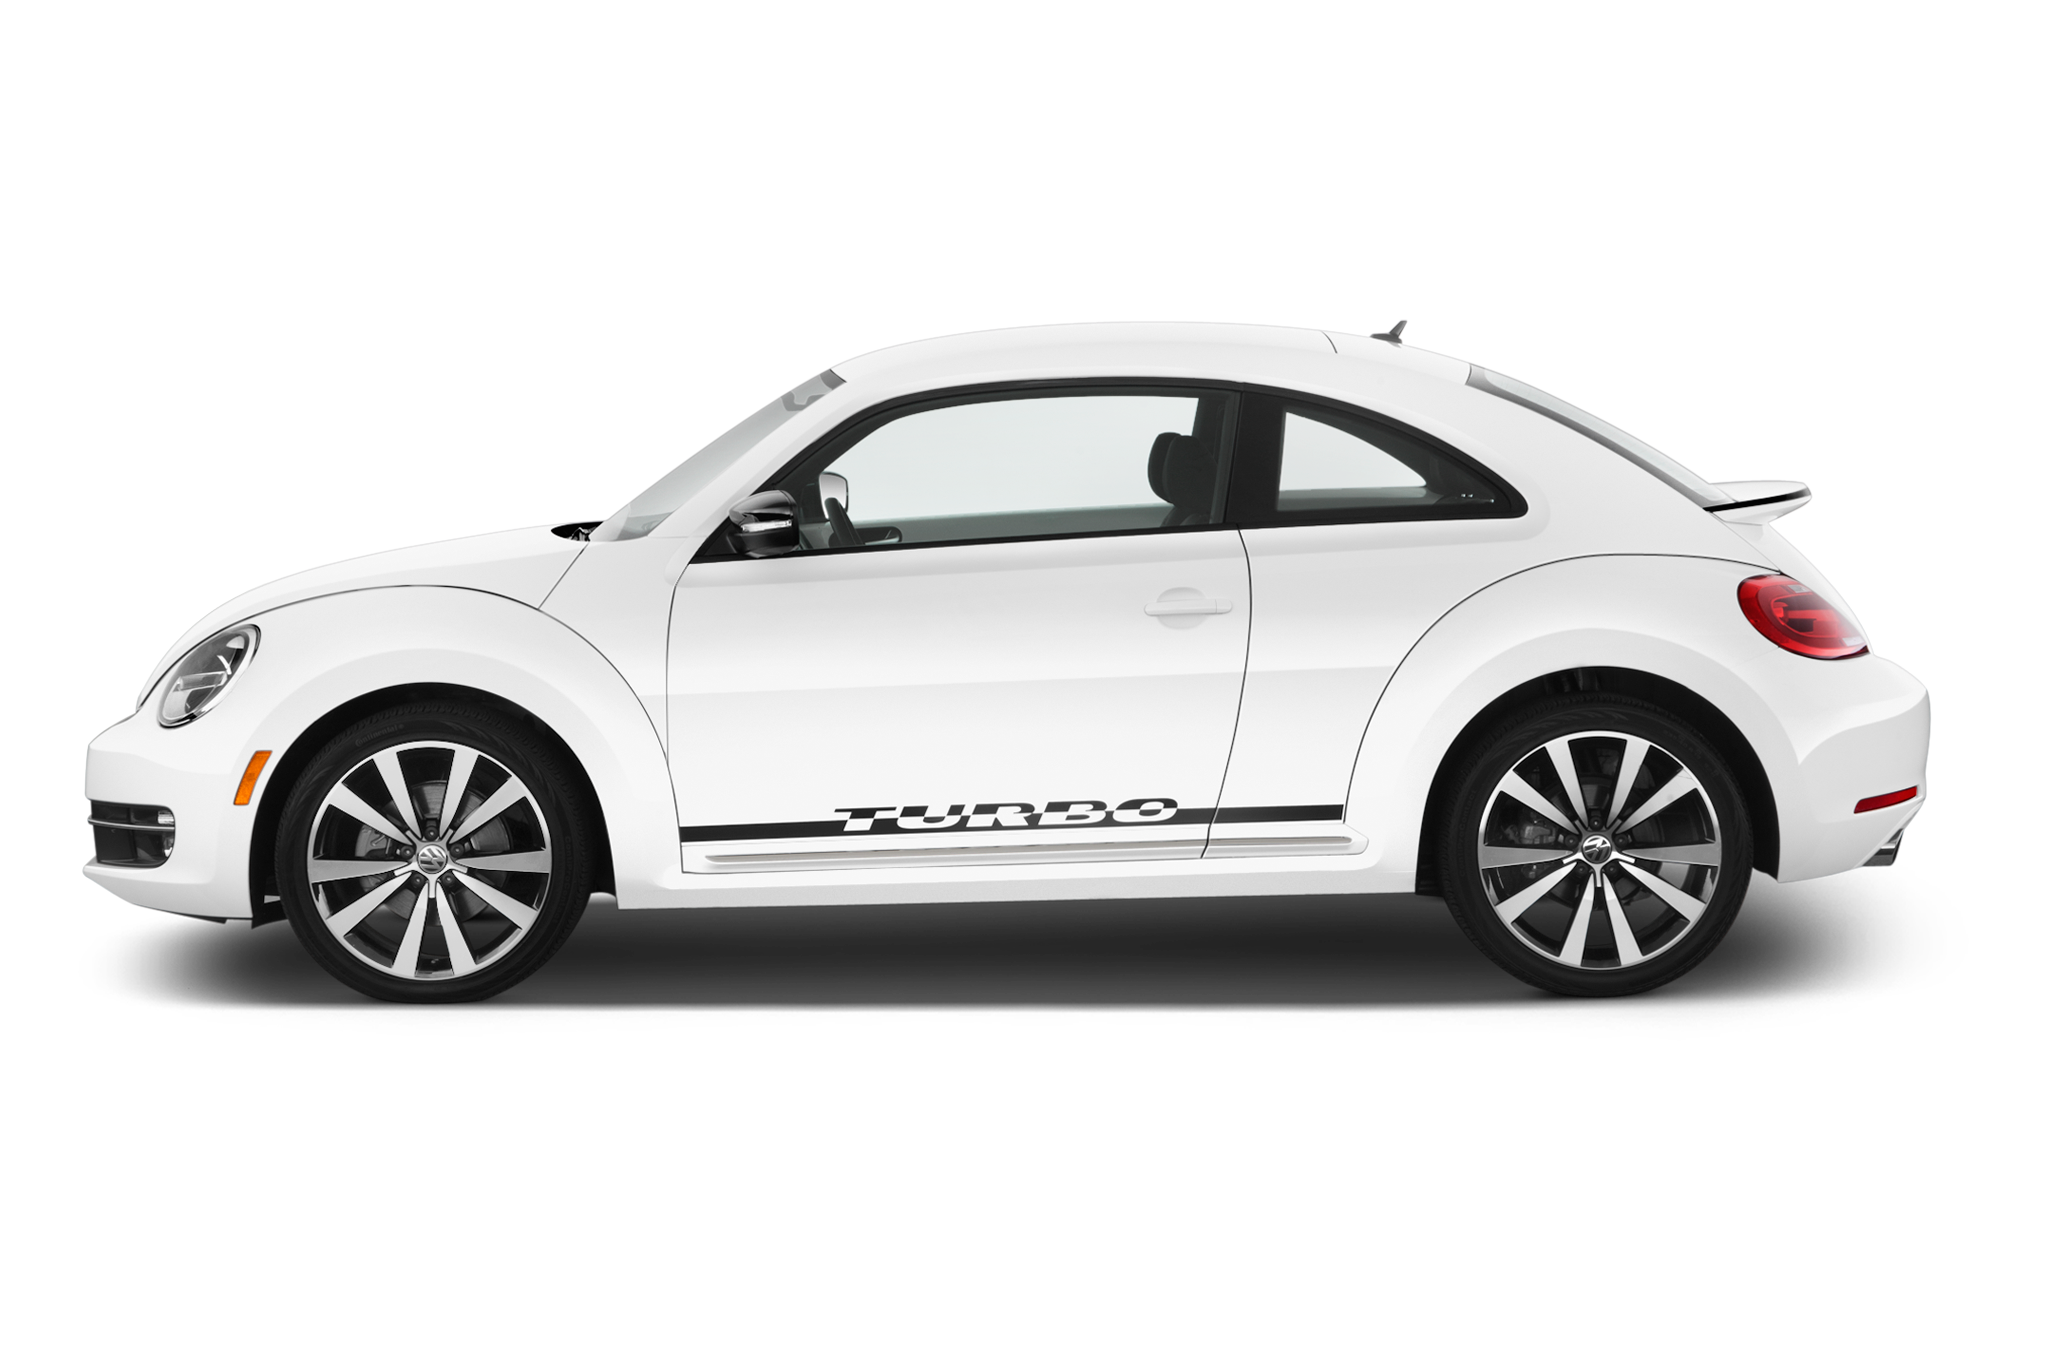 6 Things To Know About The Volkswagen Beetle Global Rallycross Cars Air Cooled Vw Parts Also New Diagram In Addition Bmw 36 96